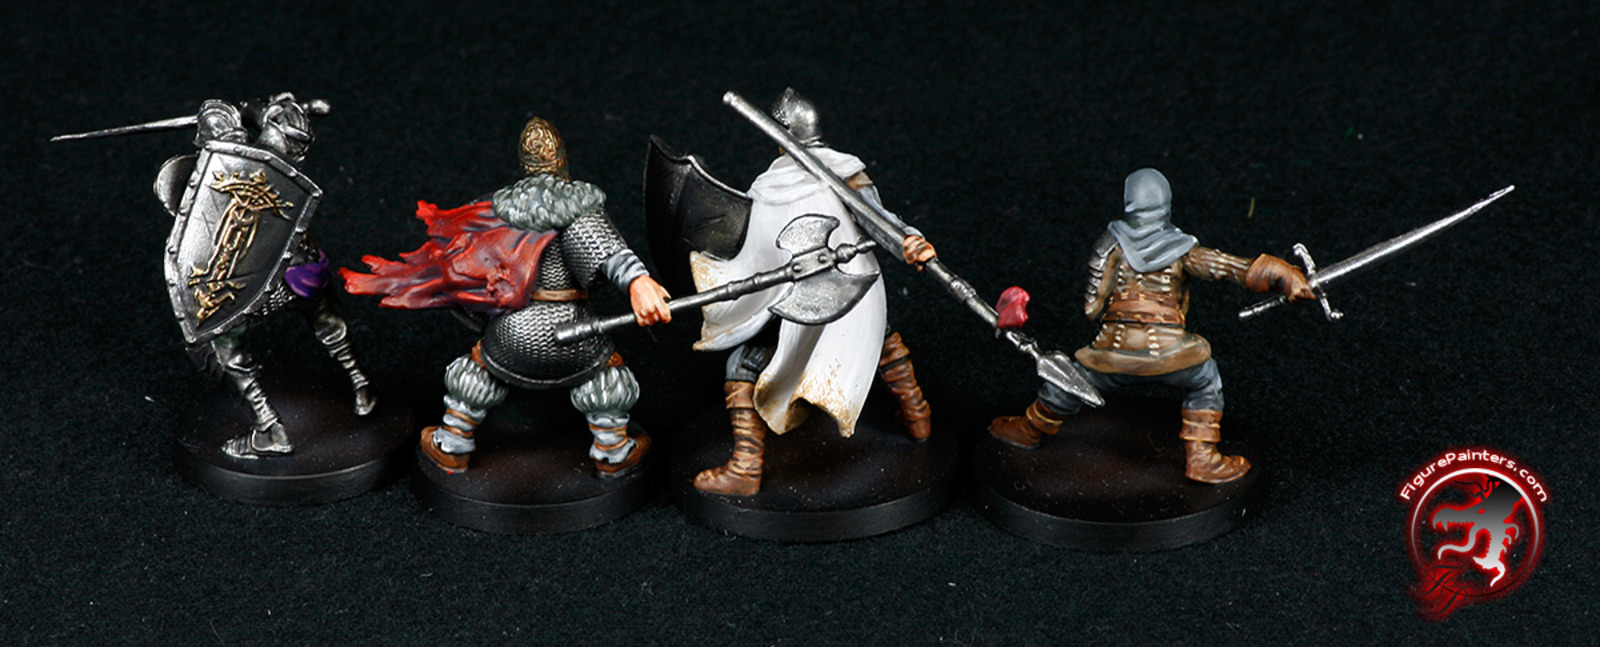 dark-souls-board-game-heroes-02.jpg